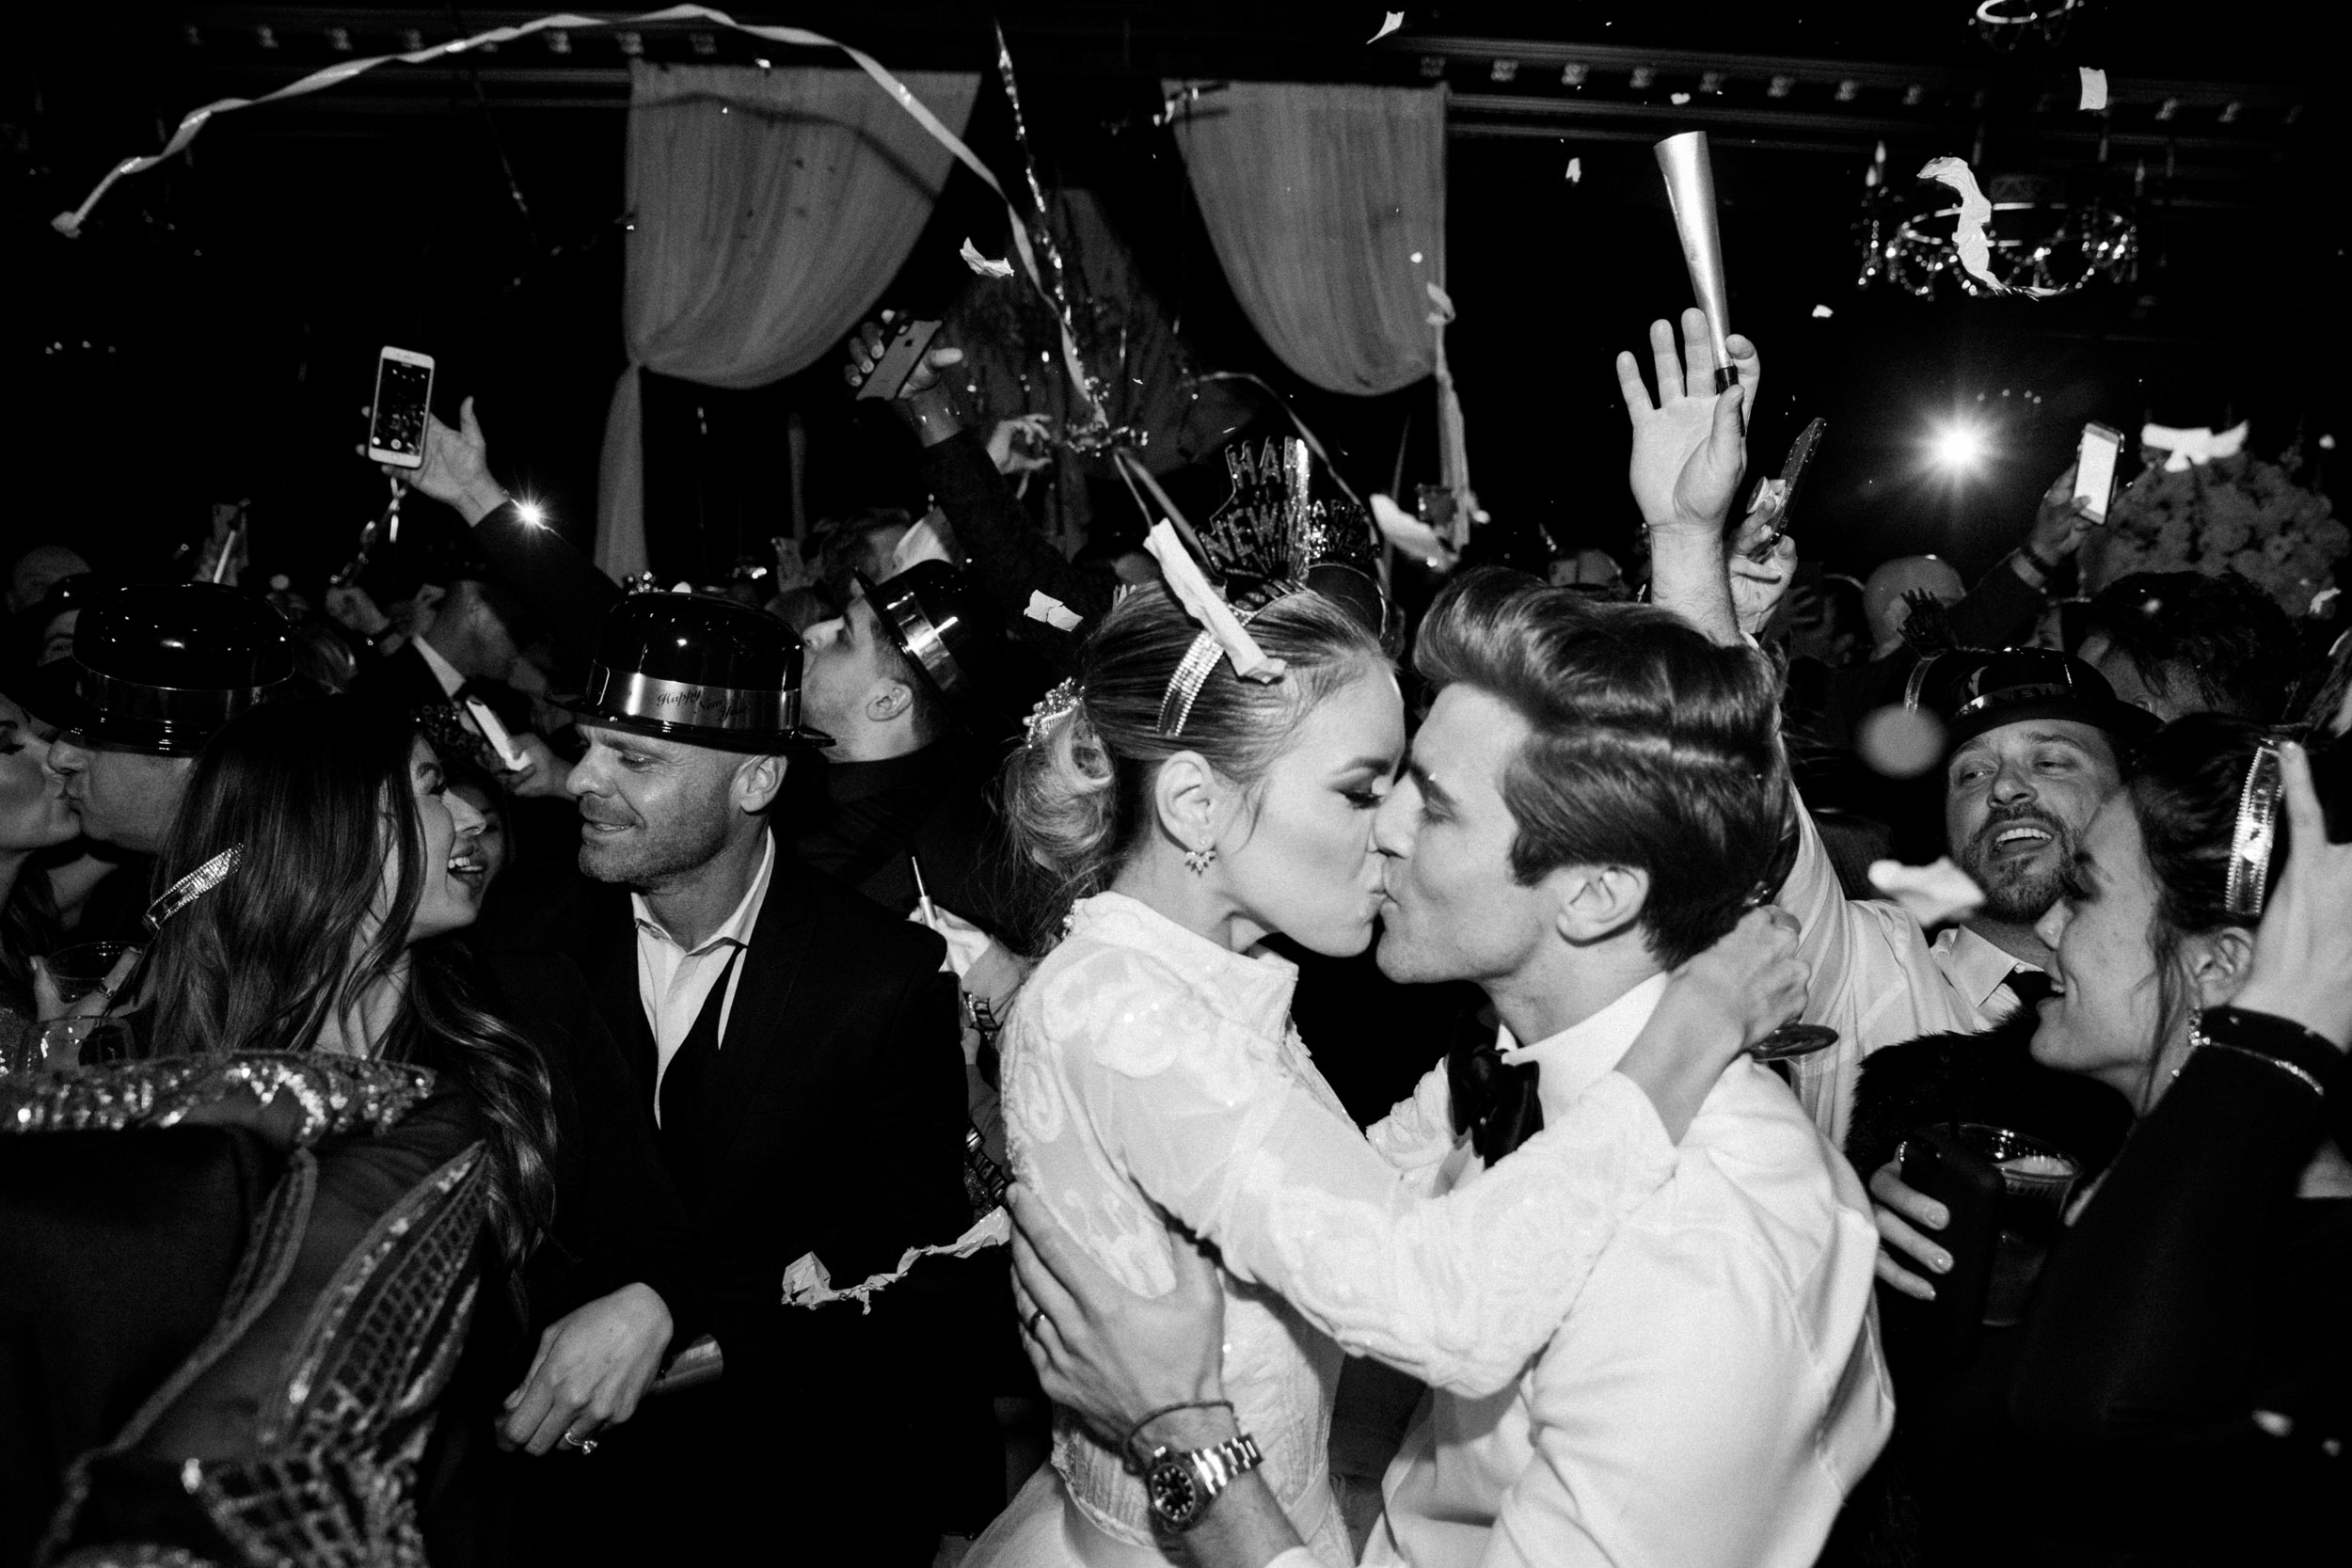 New years eve NYE Wedding bride and groom kiss villa siena